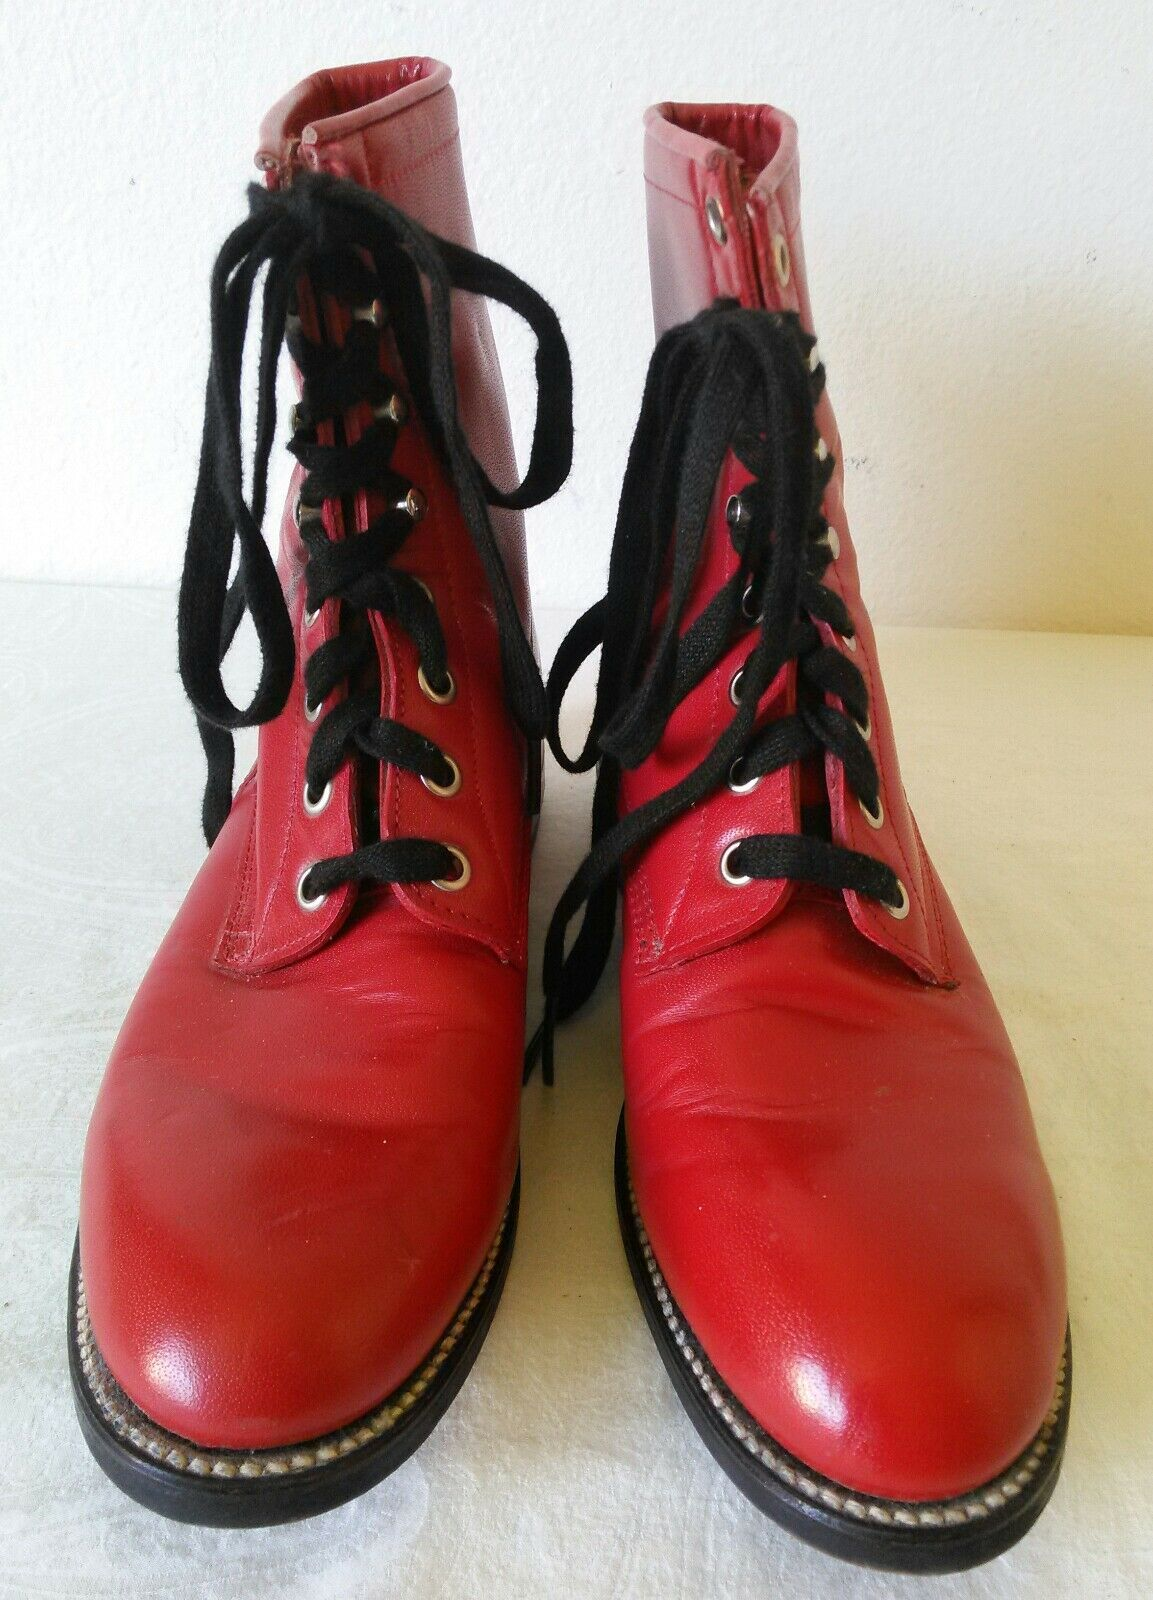 Gran Justin Rojo Laceup Leather Occidental Lady's Vaquera Roper Occidental Leather Botas B 6ff562